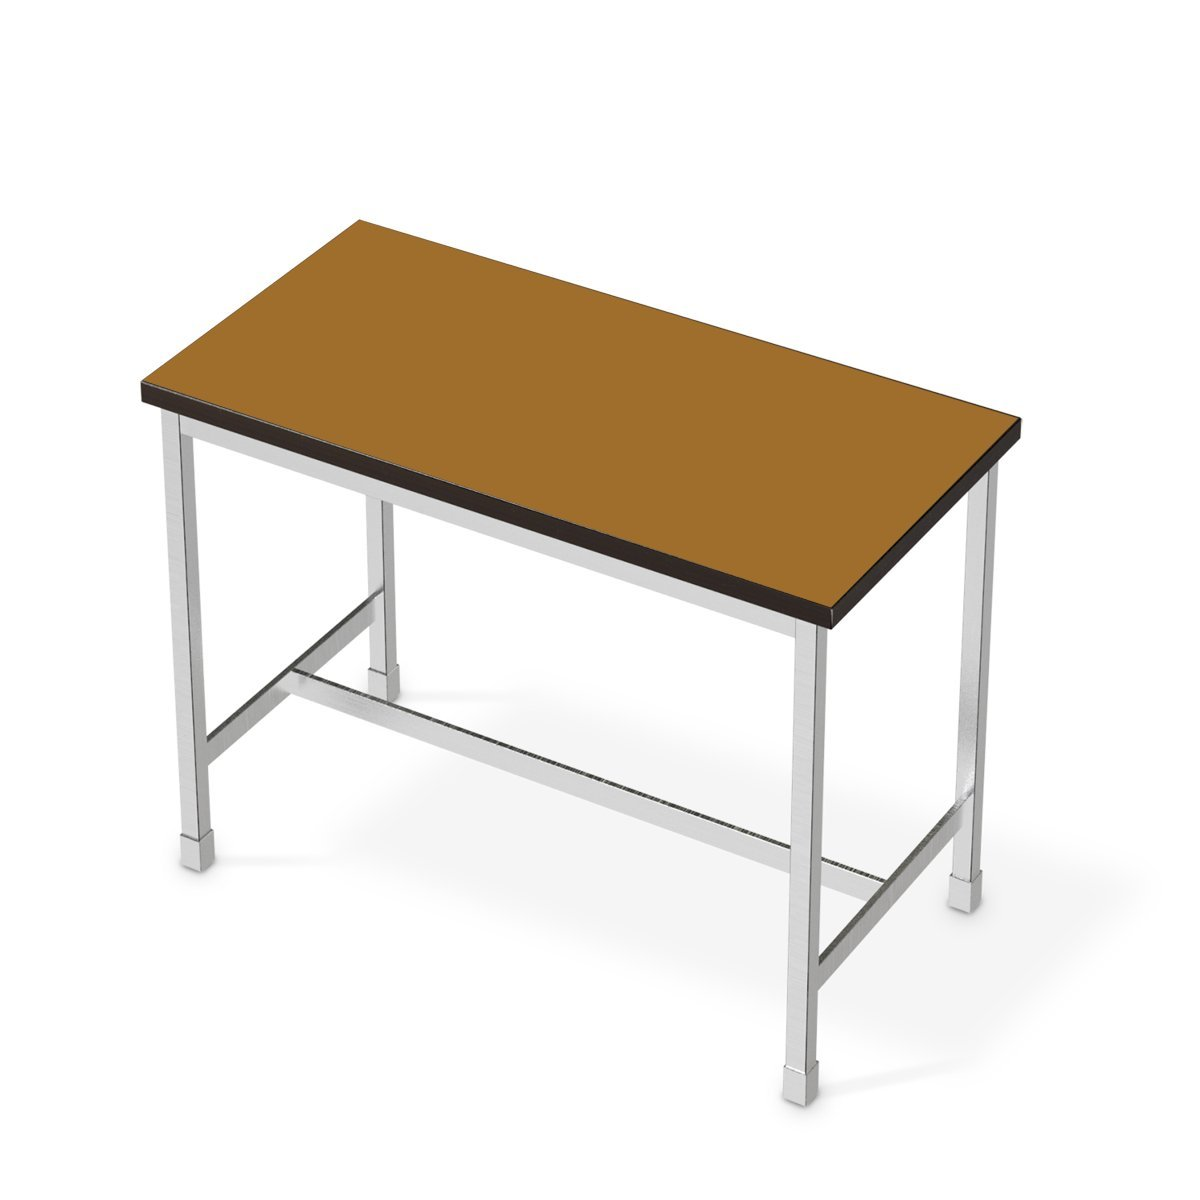 Full Size of Mbeldekoration Ikea Utby Bar Table 120 60 Cm Design Brown 2 Betten 160x200 Küche Kaufen Modulküche Kosten Bei Bartisch Miniküche Sofa Mit Schlaffunktion Wohnzimmer Bartisch Ikea